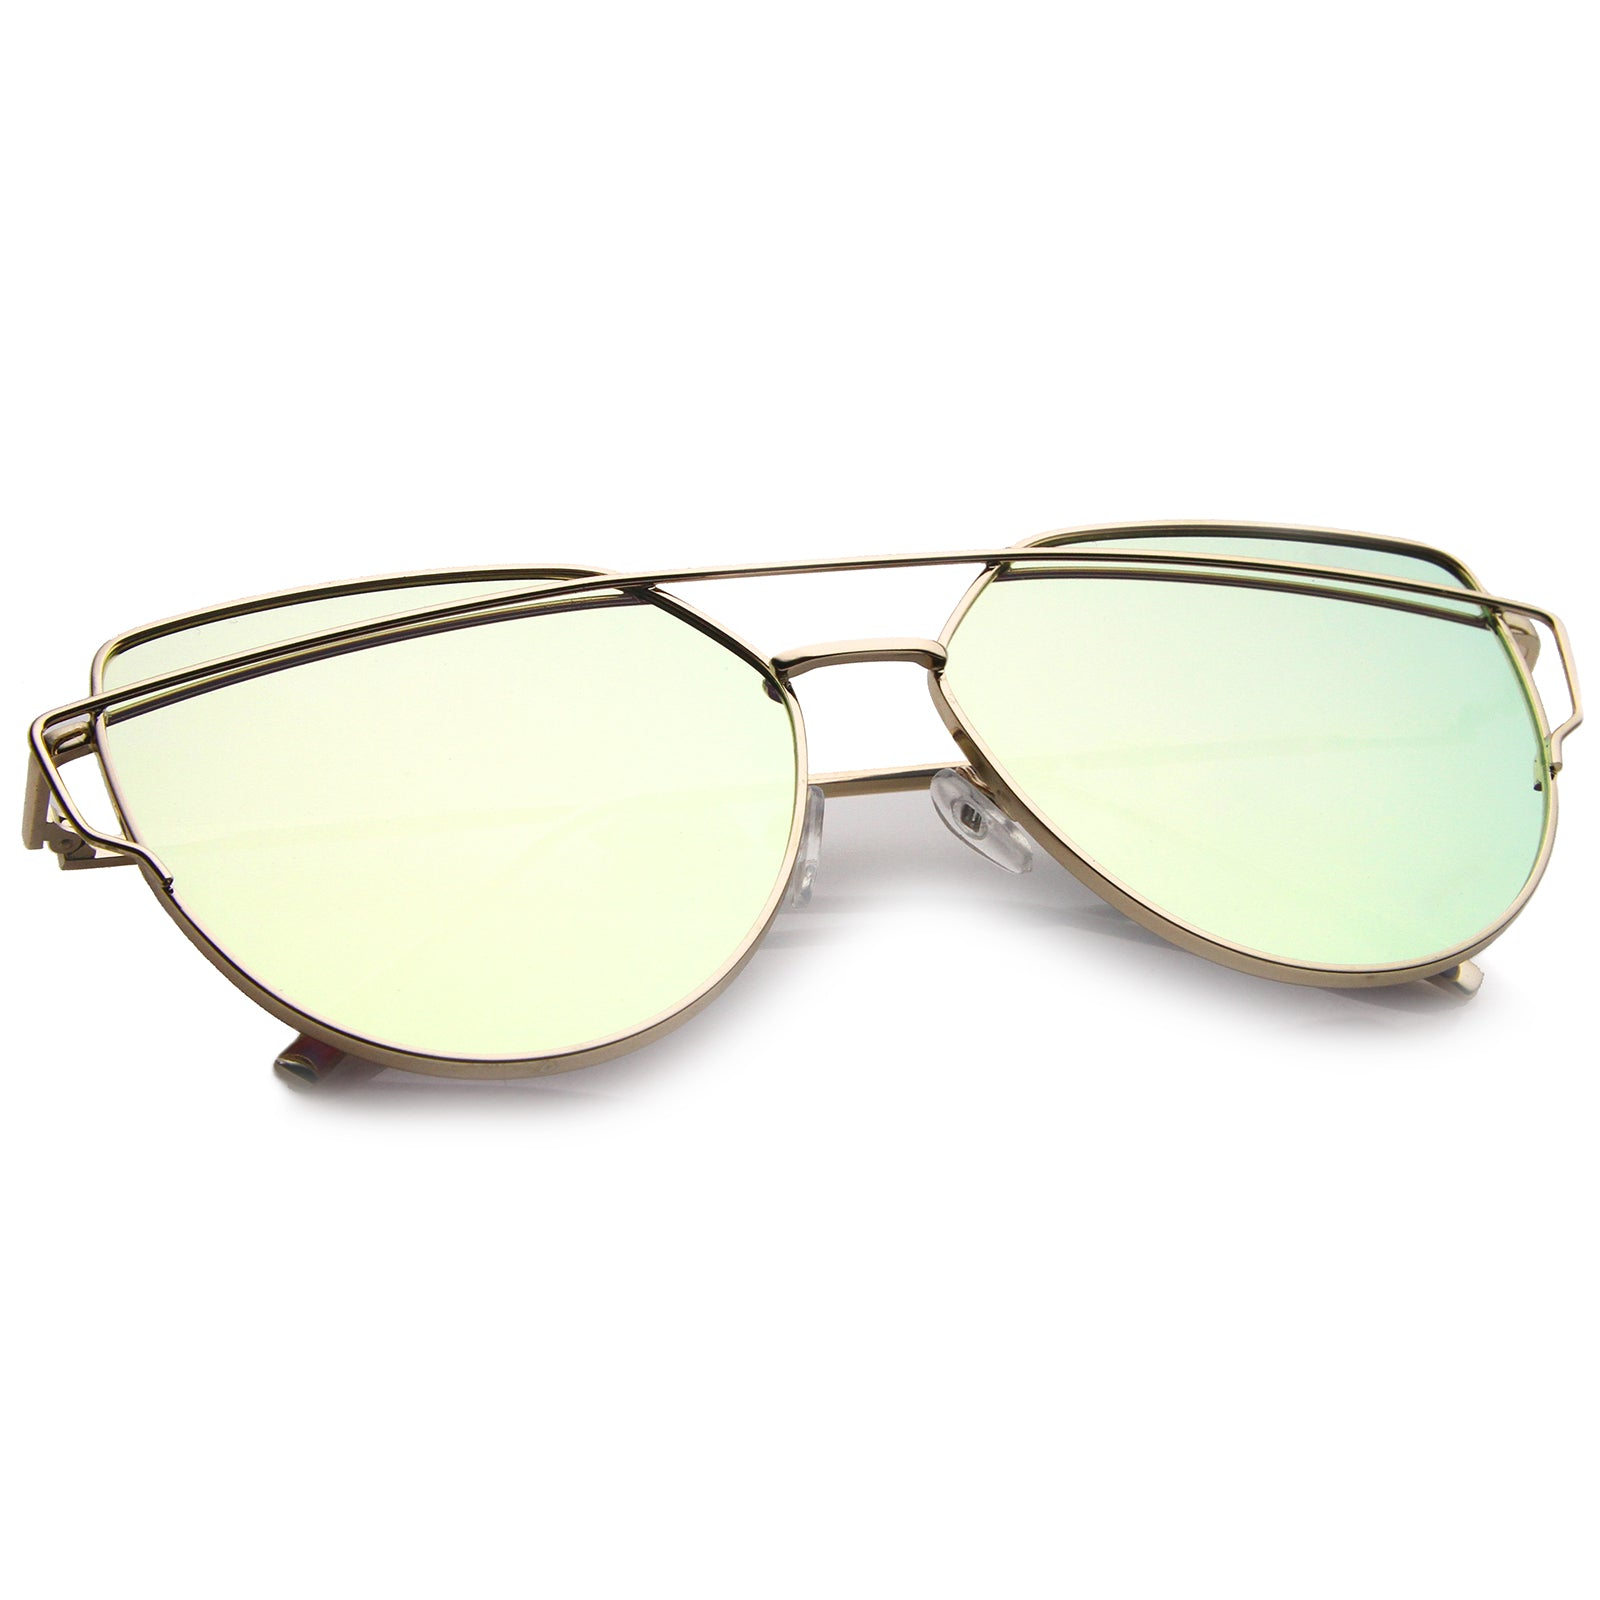 Oversize Metal Frame Thin Temple Color Mirror Flat Lens Aviator Sunglasses 62mm - sunglass.la - 24